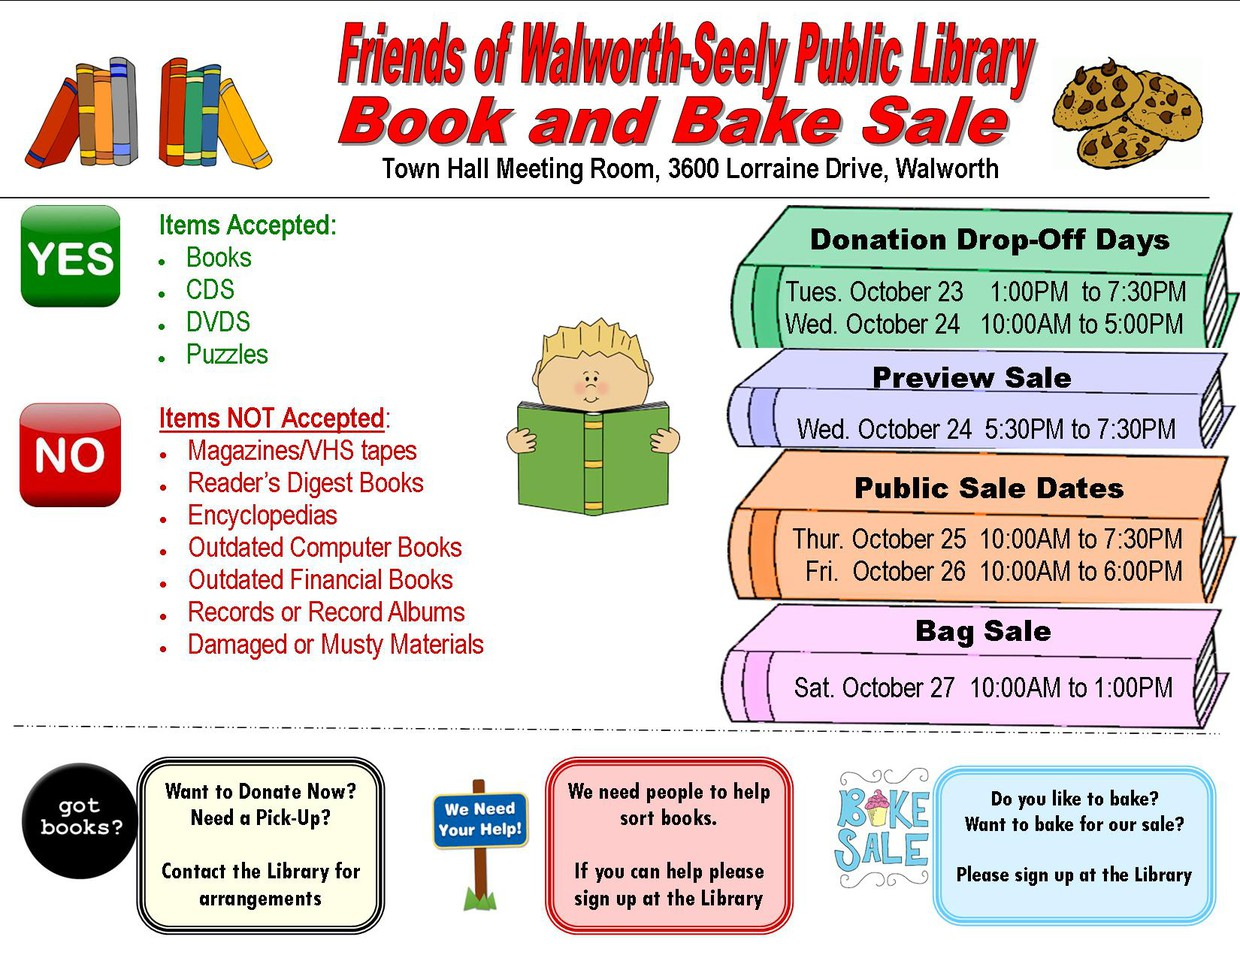 Walworth Library Book and Bake Sale